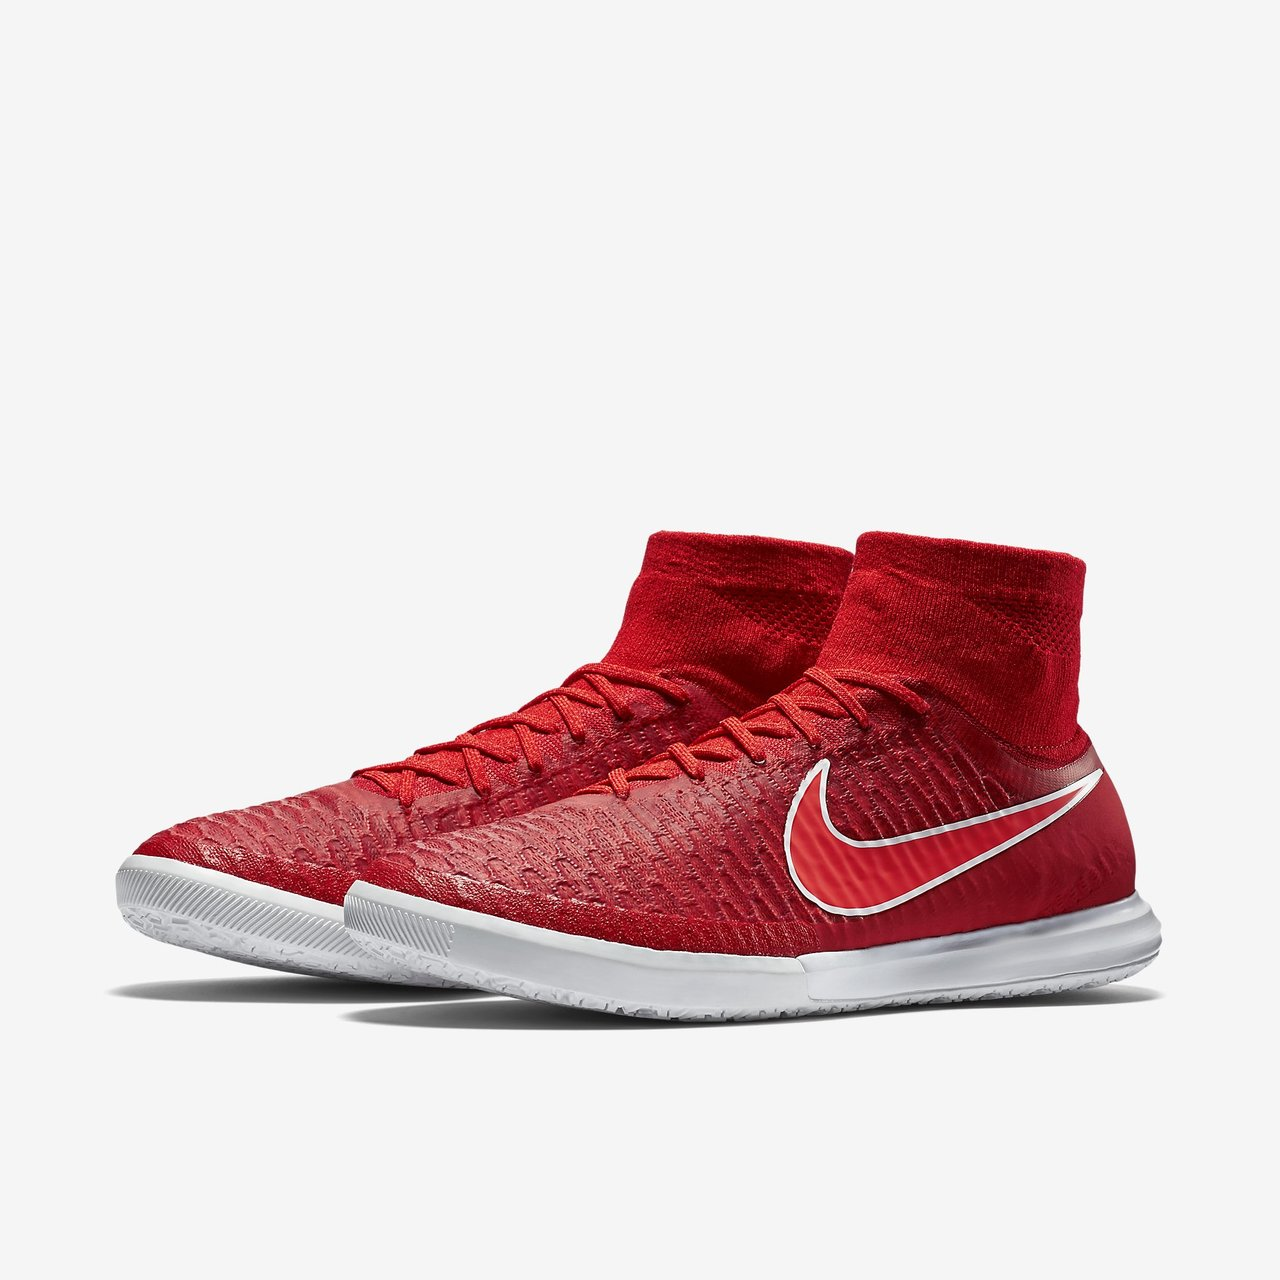 separation shoes 4ae37 5cff3 Click to enlarge image nike-magistax-proximo-ic-challenge ...